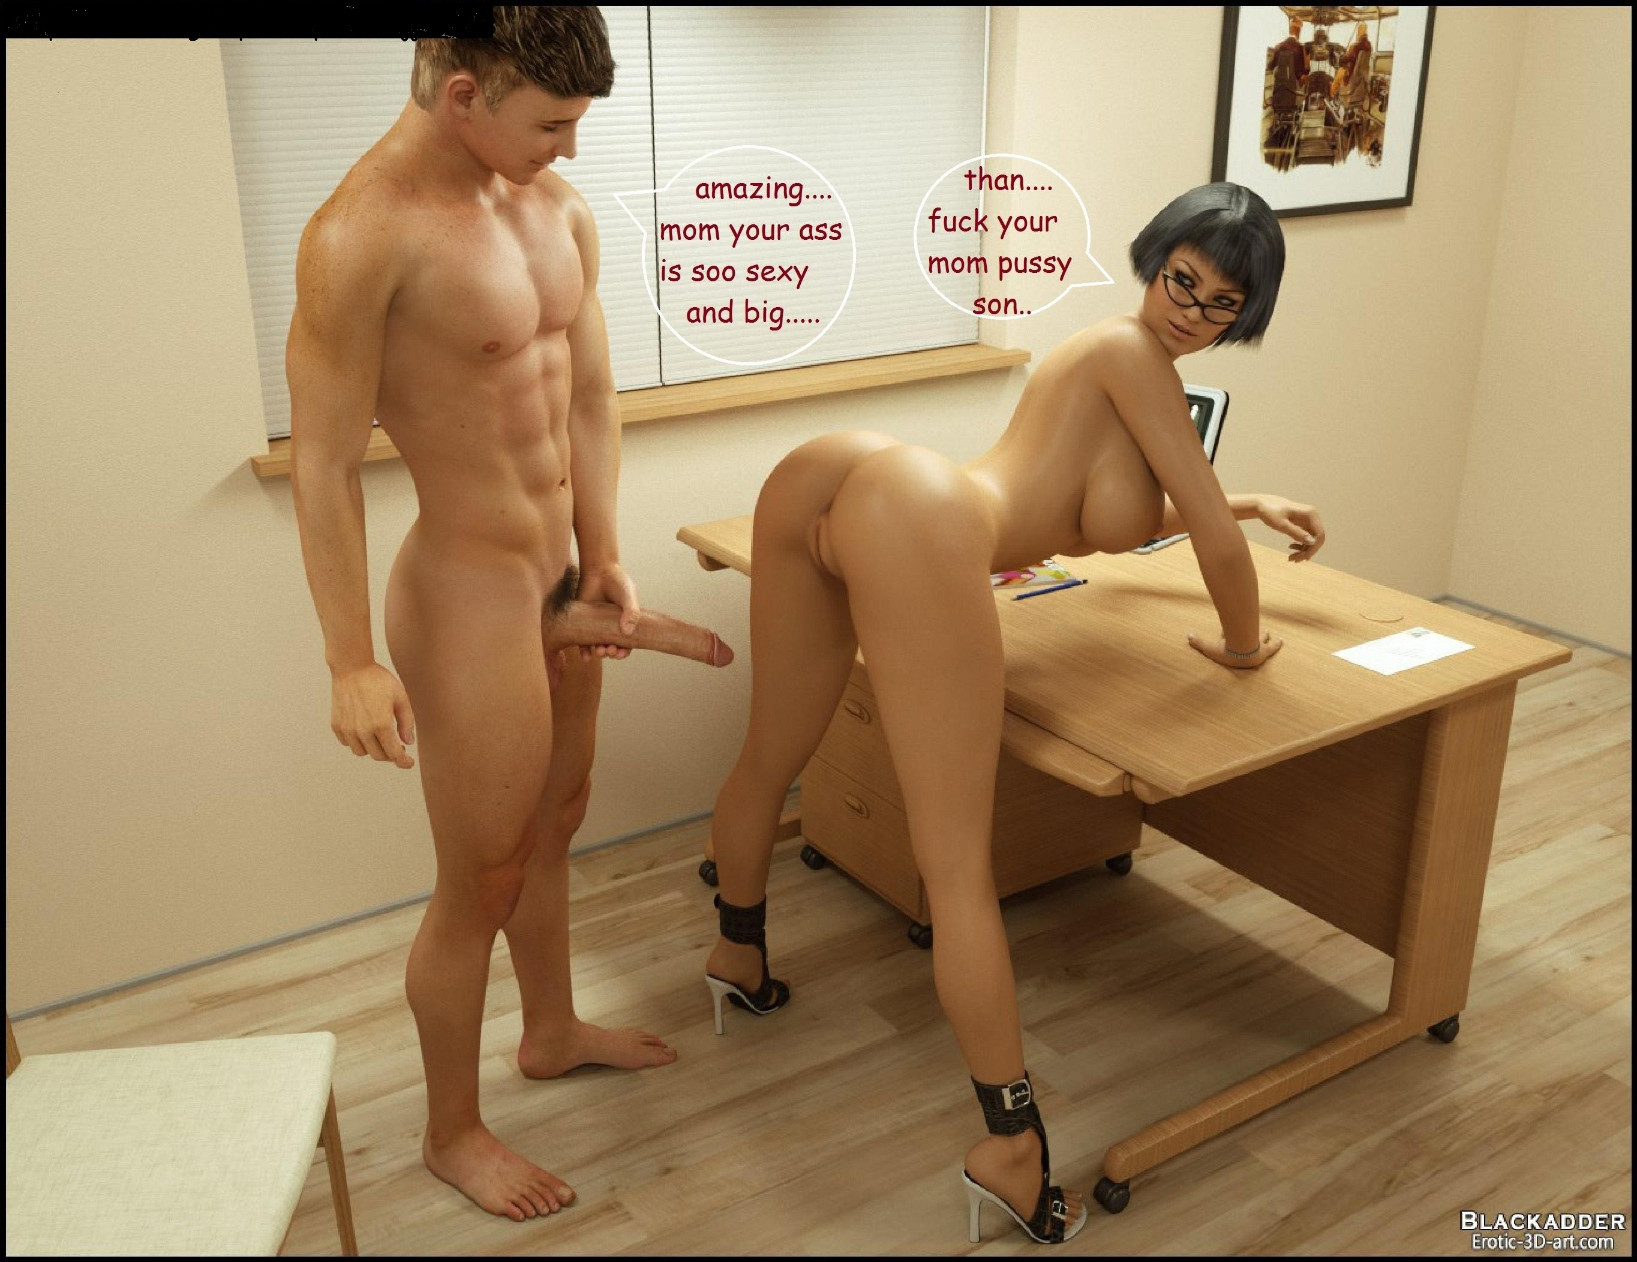 Amazing 3D Porn Art busted – featuring candy & jake – erotic 3d art